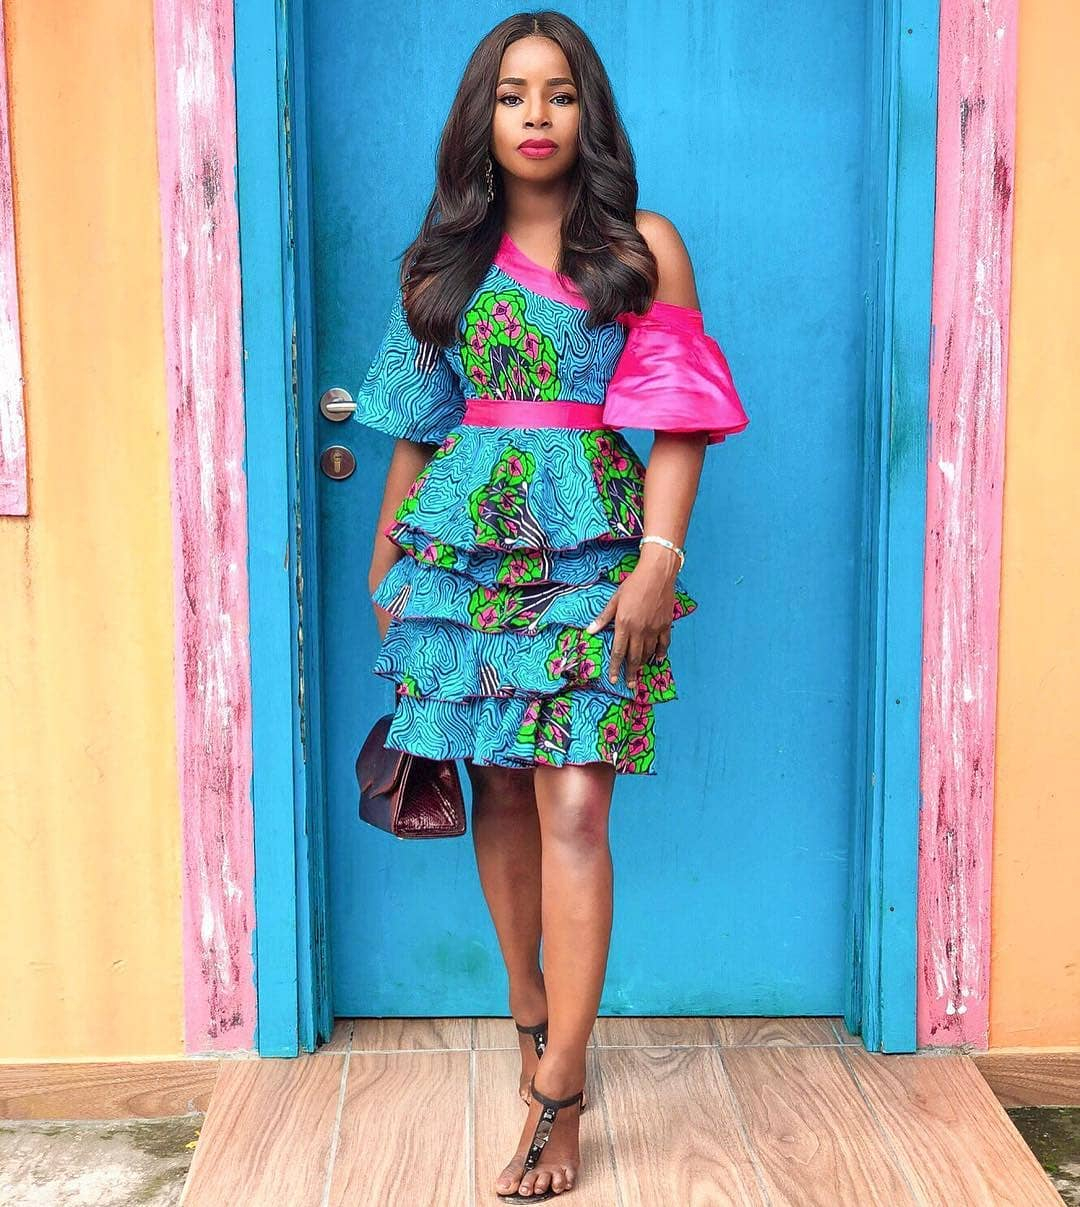 Fine Fine Ankara Styles Like These, Na Girls Dey Rush Them!